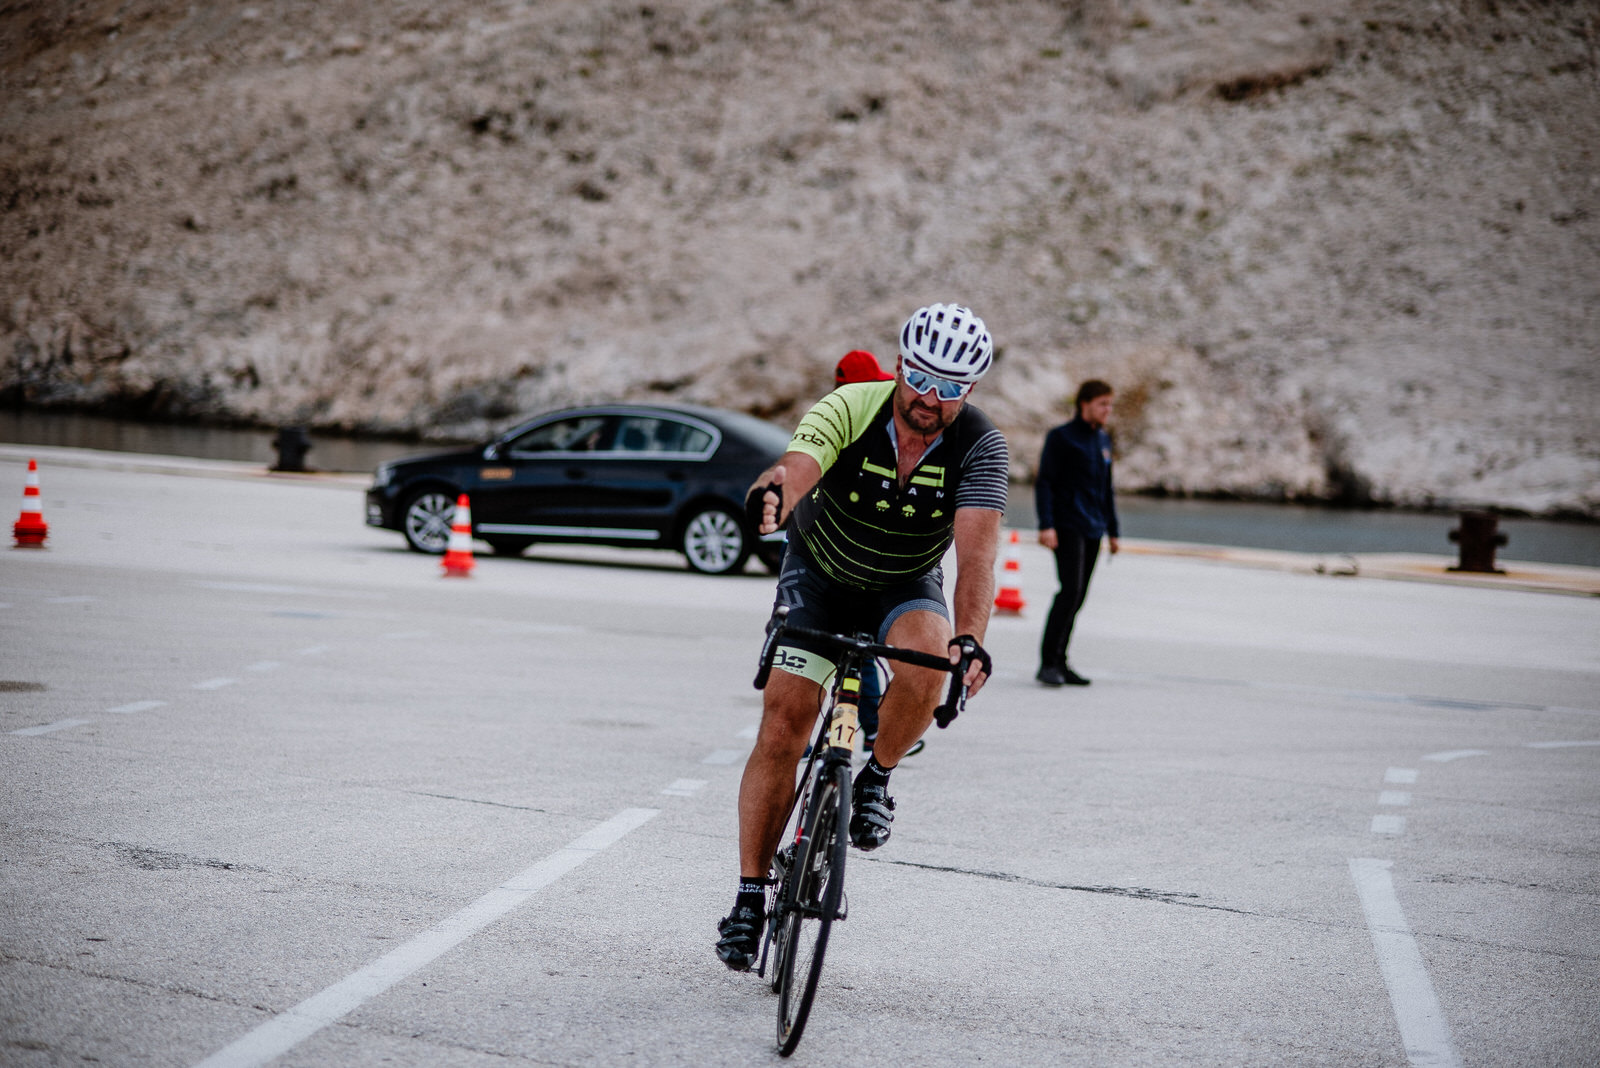 likaclub_Granfondo-Pag-–-Cycling-on-the-Moon_2019-38